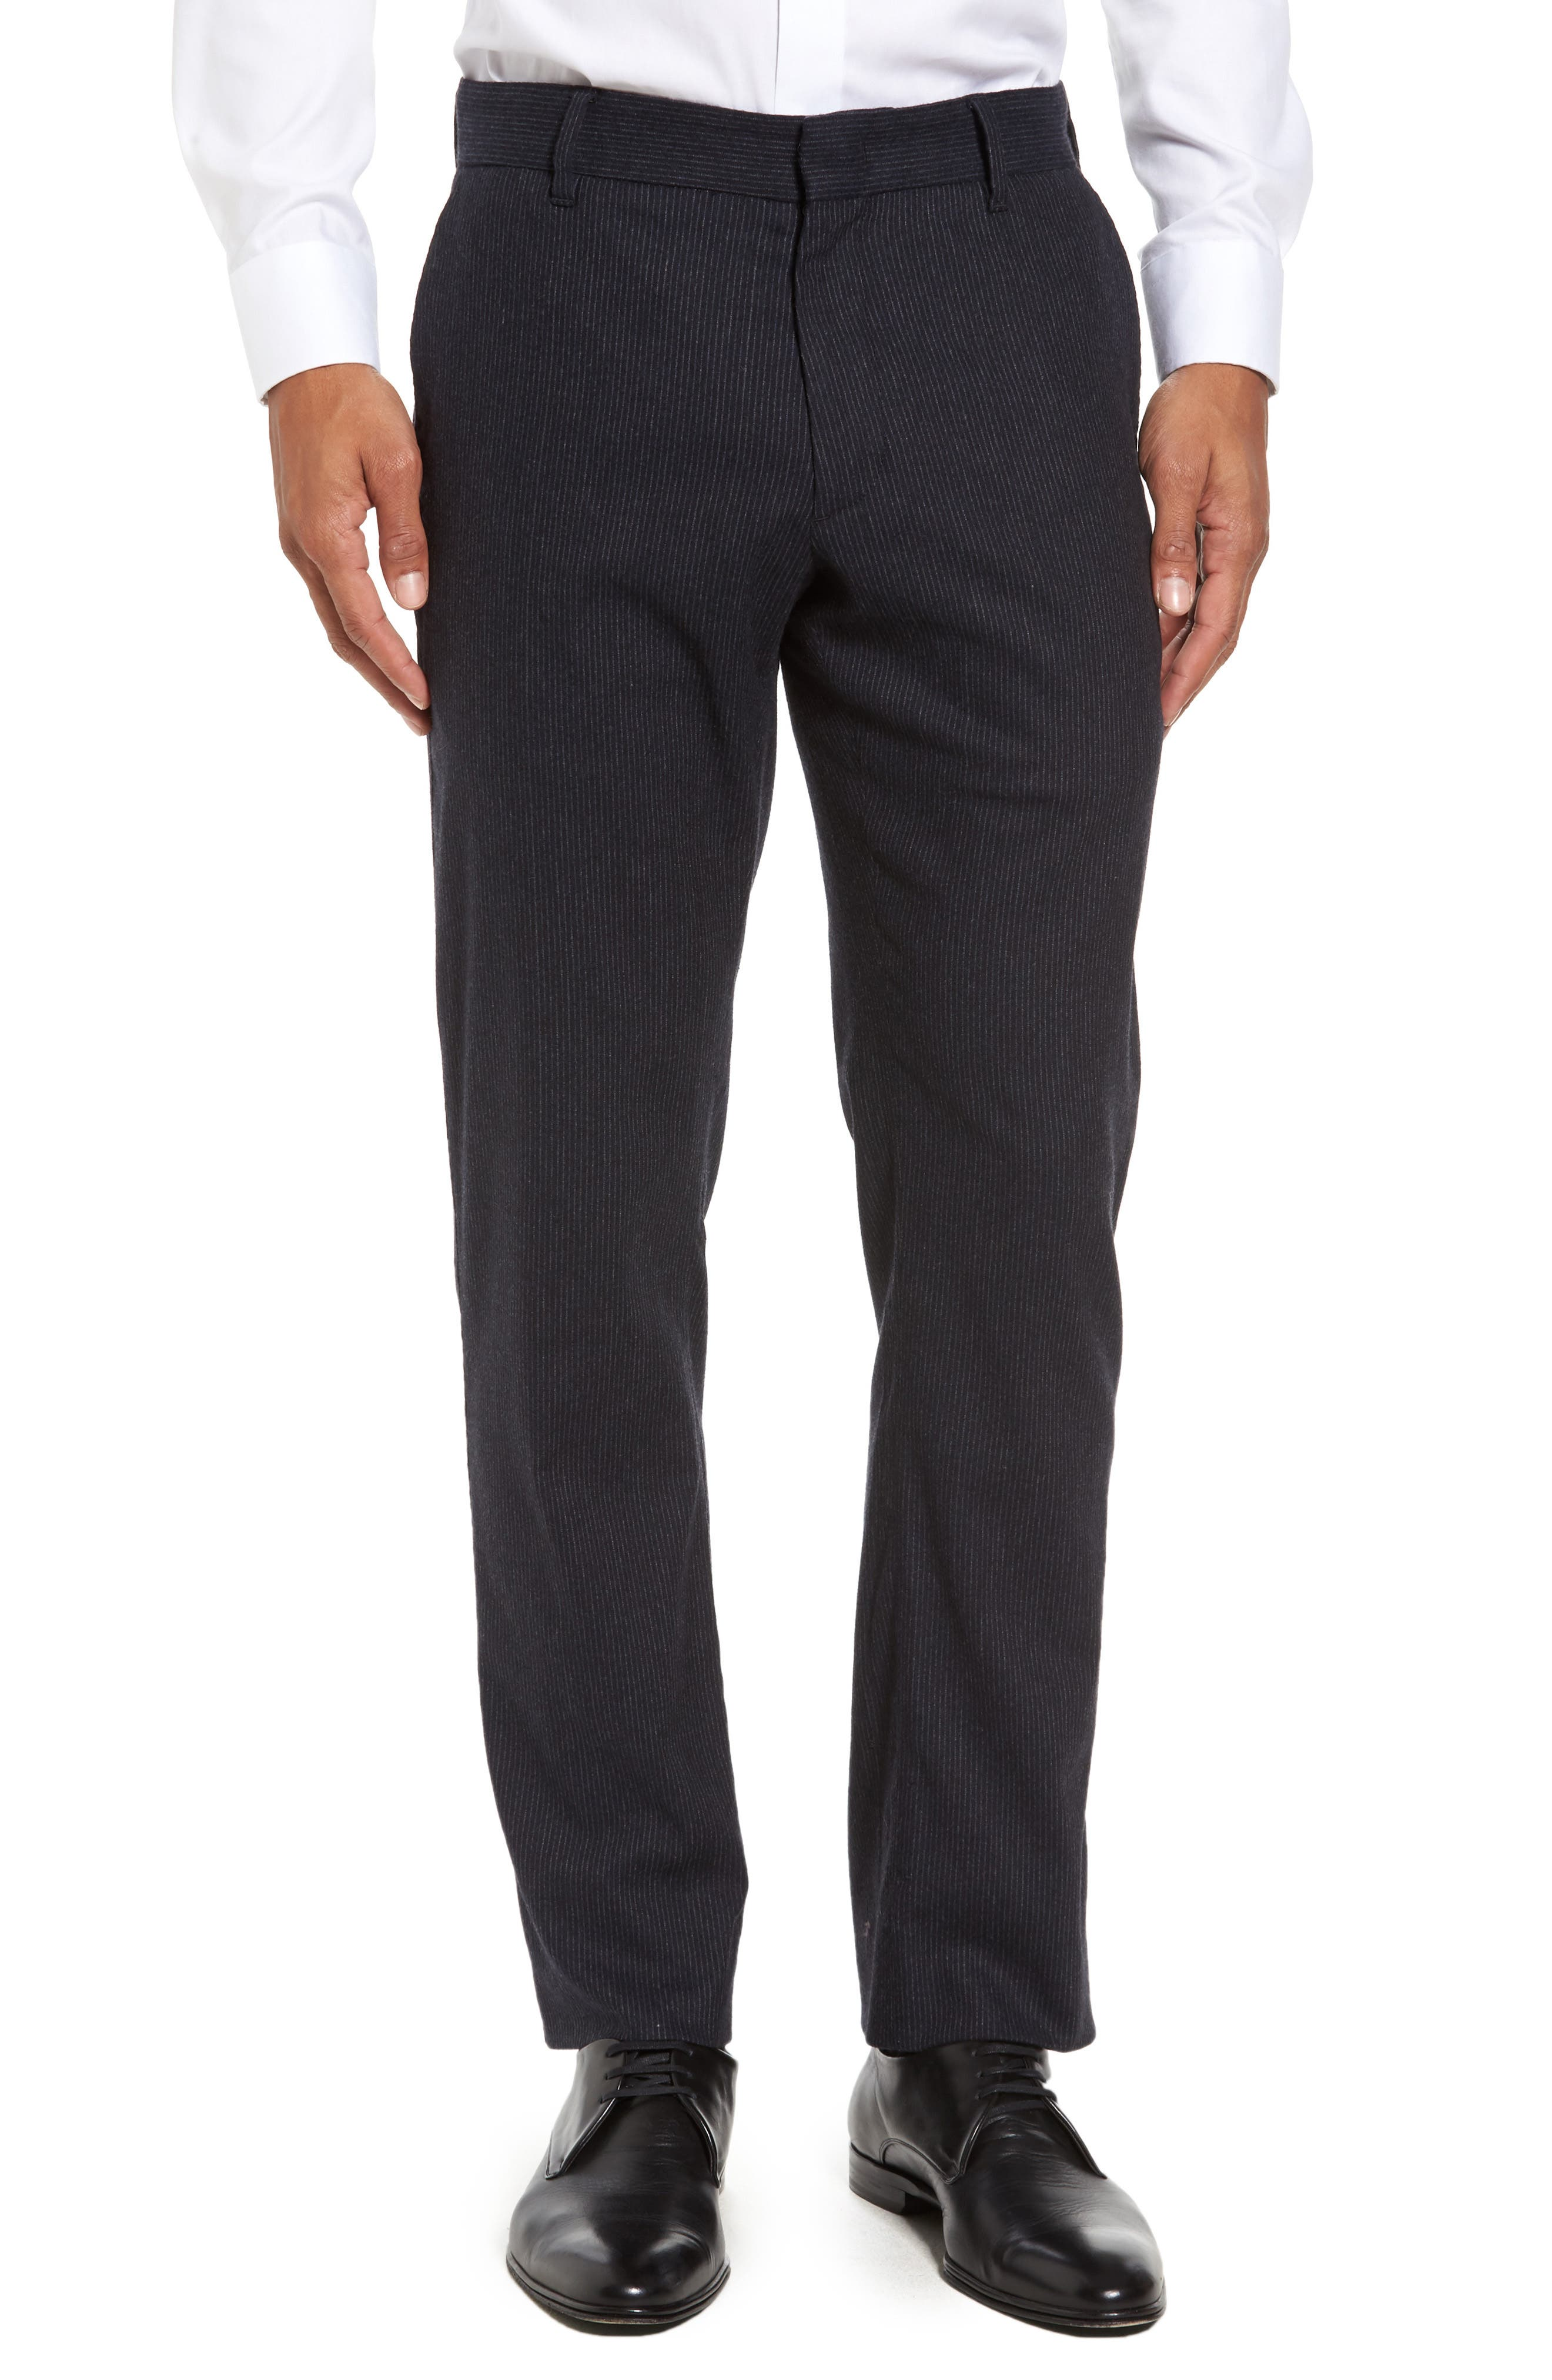 Rushmore Pinstripe Stretch Wool Blend Trousers,                             Main thumbnail 1, color,                             Navy